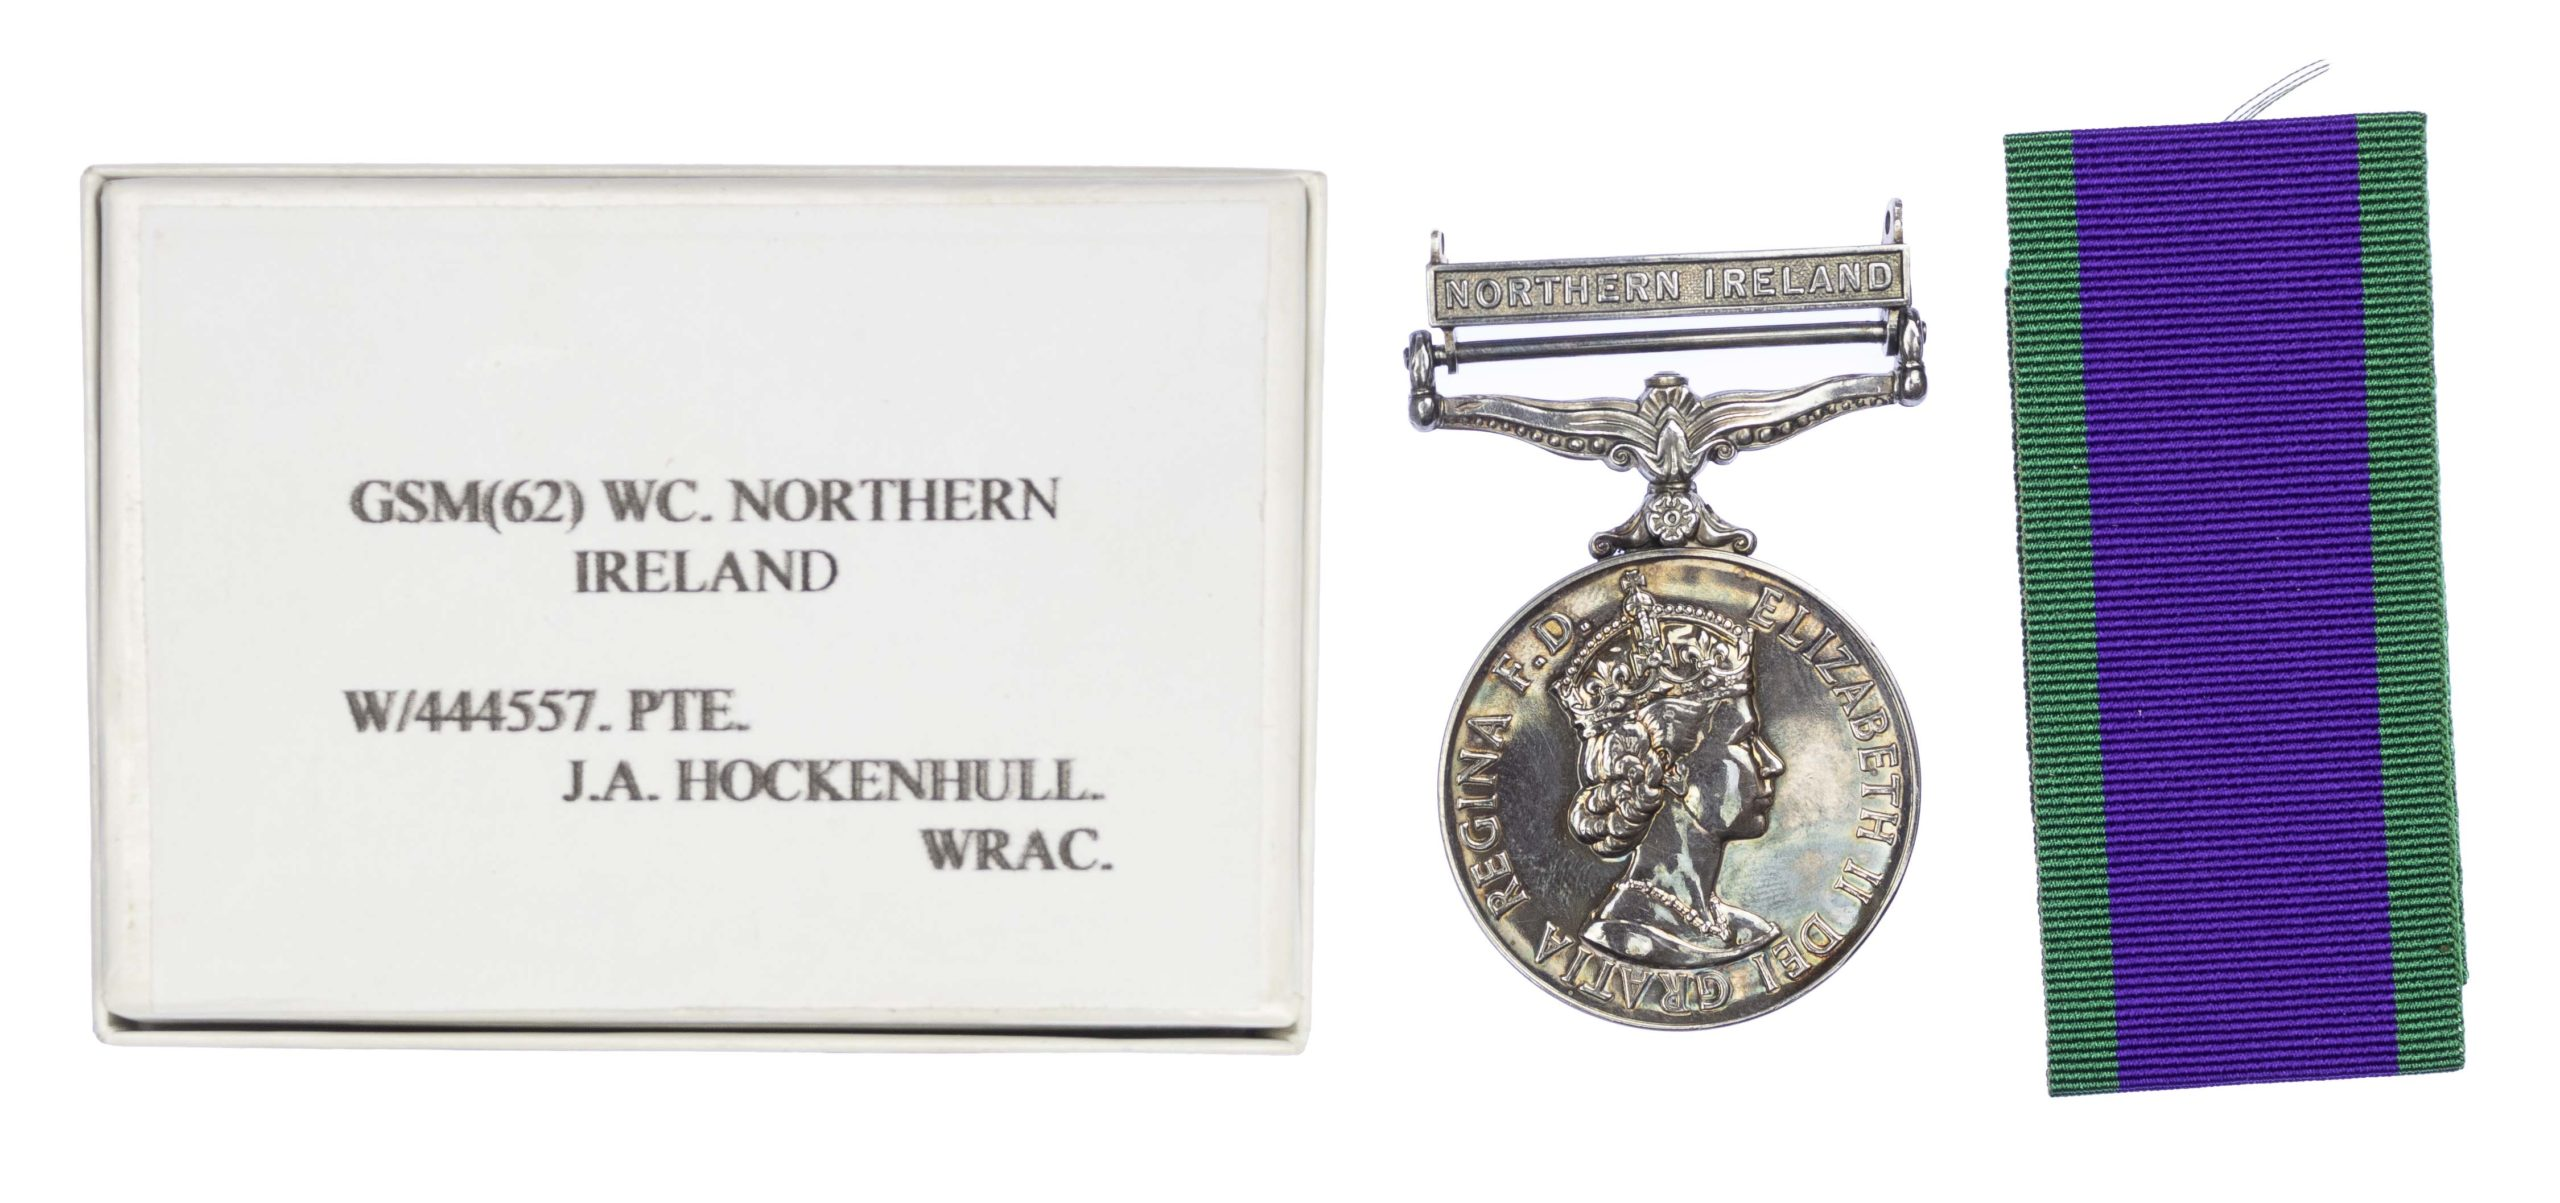 General service Medal, 1962-2007, one clasp Northern Ireland, to Private J.A. Hockenhull